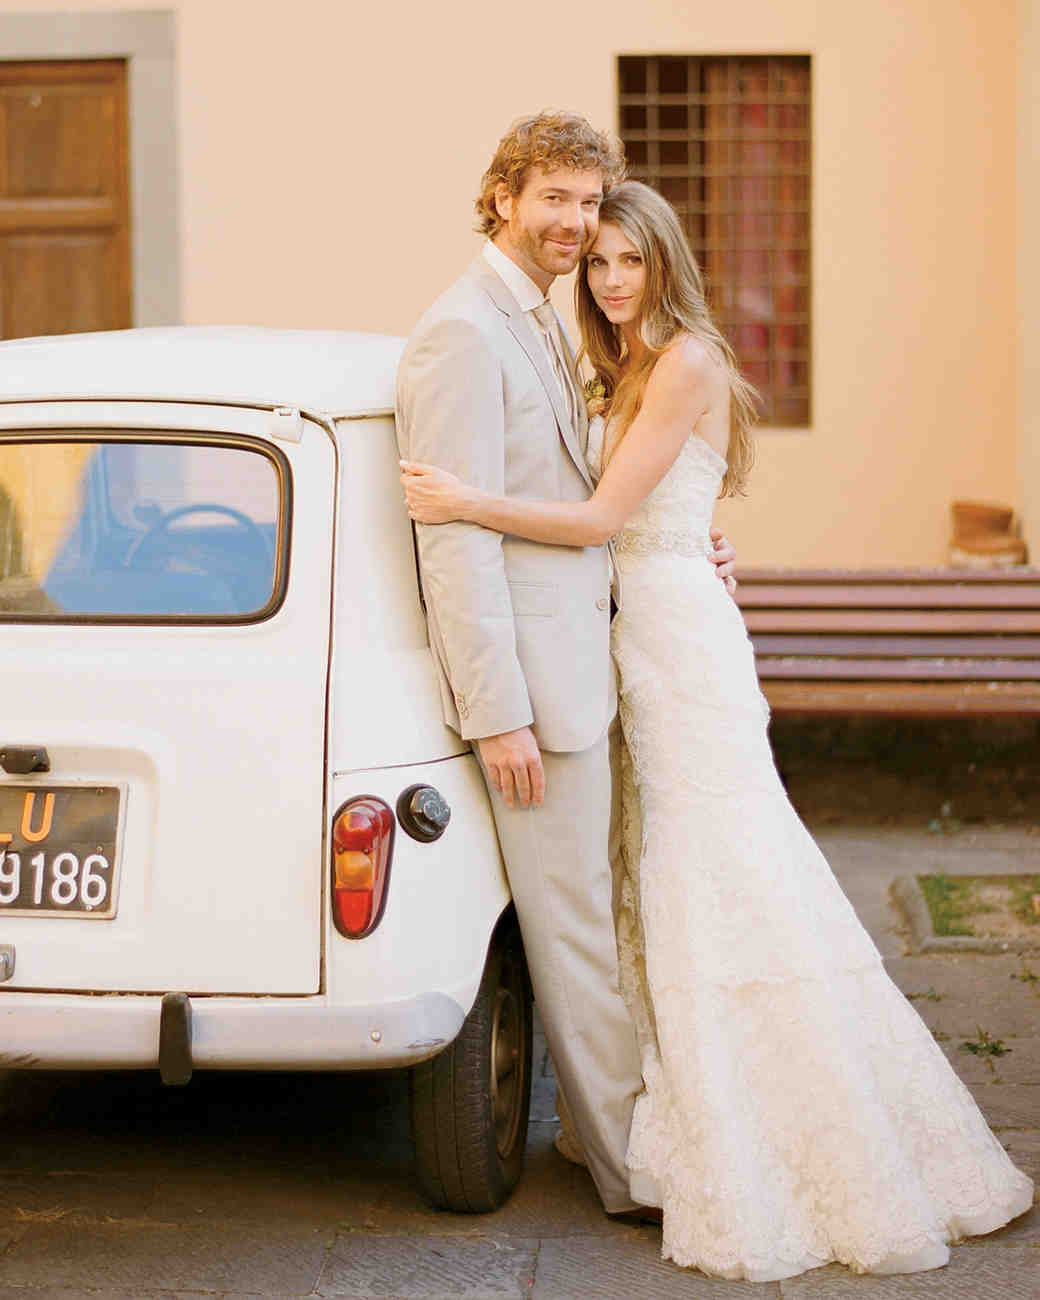 An Intimate and Whimsical Destination Wedding in Italy